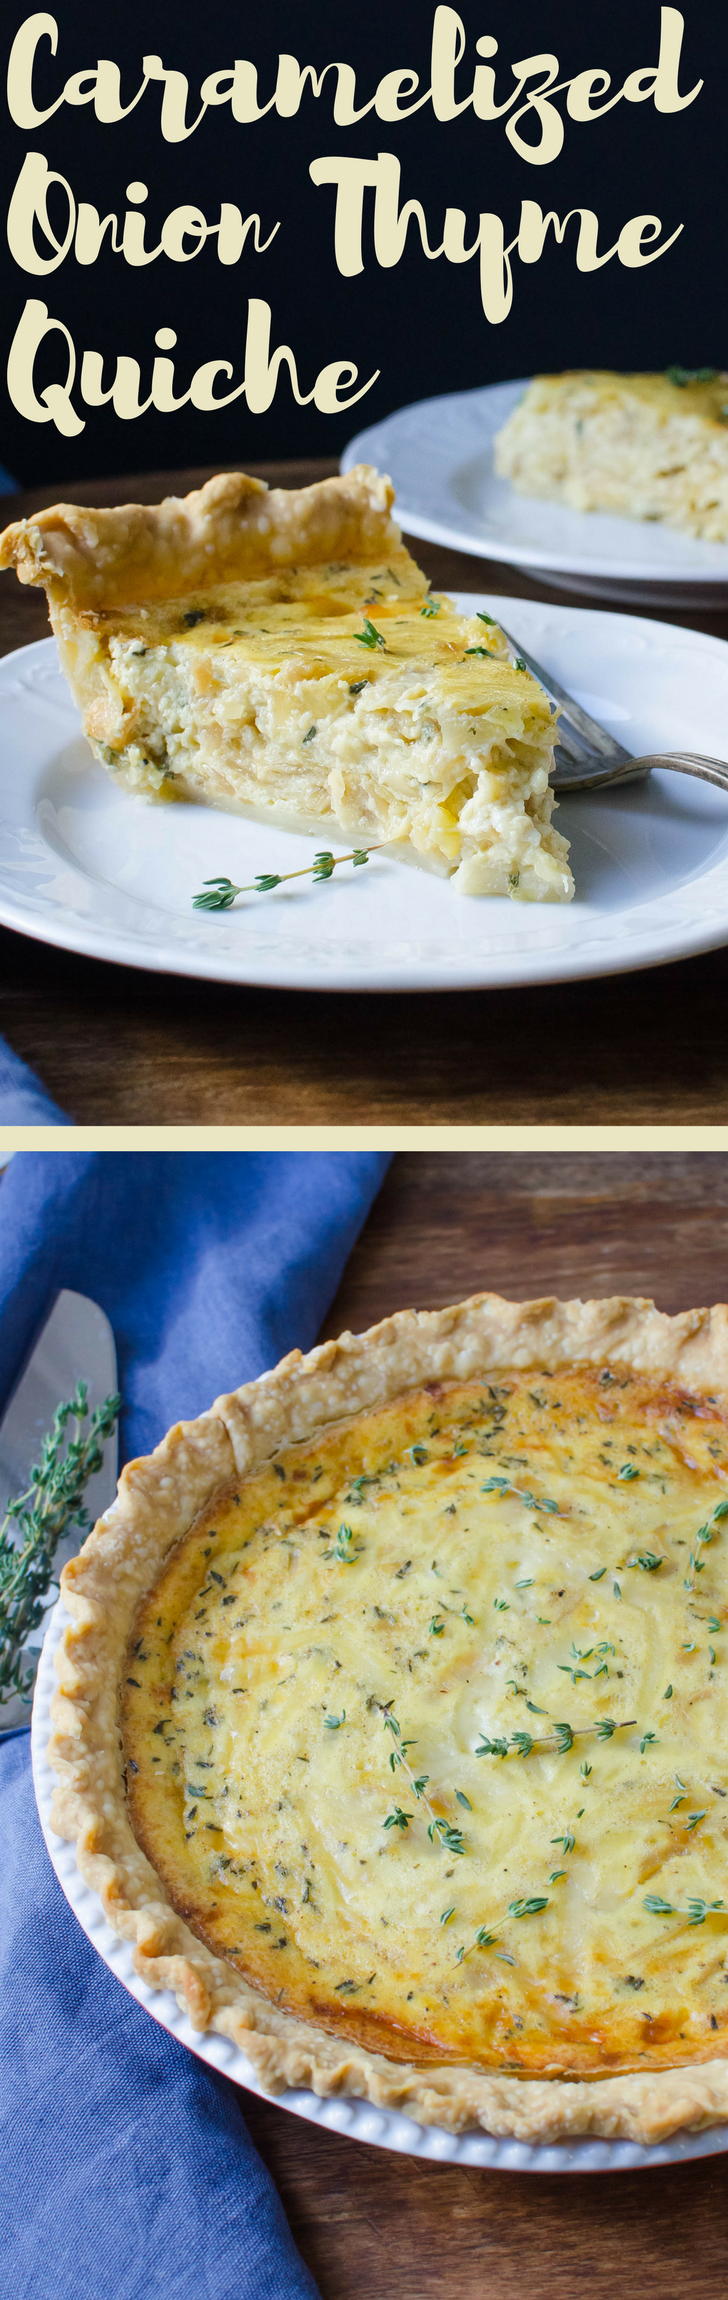 Need a foolproof quiche recipe?  This Caramelized Onion and Thyme Quiche is it! A delicious vegetarian entree that's great for entertaining and  you can make-ahead!  Great for brunch or special occasions like Christmas morning!